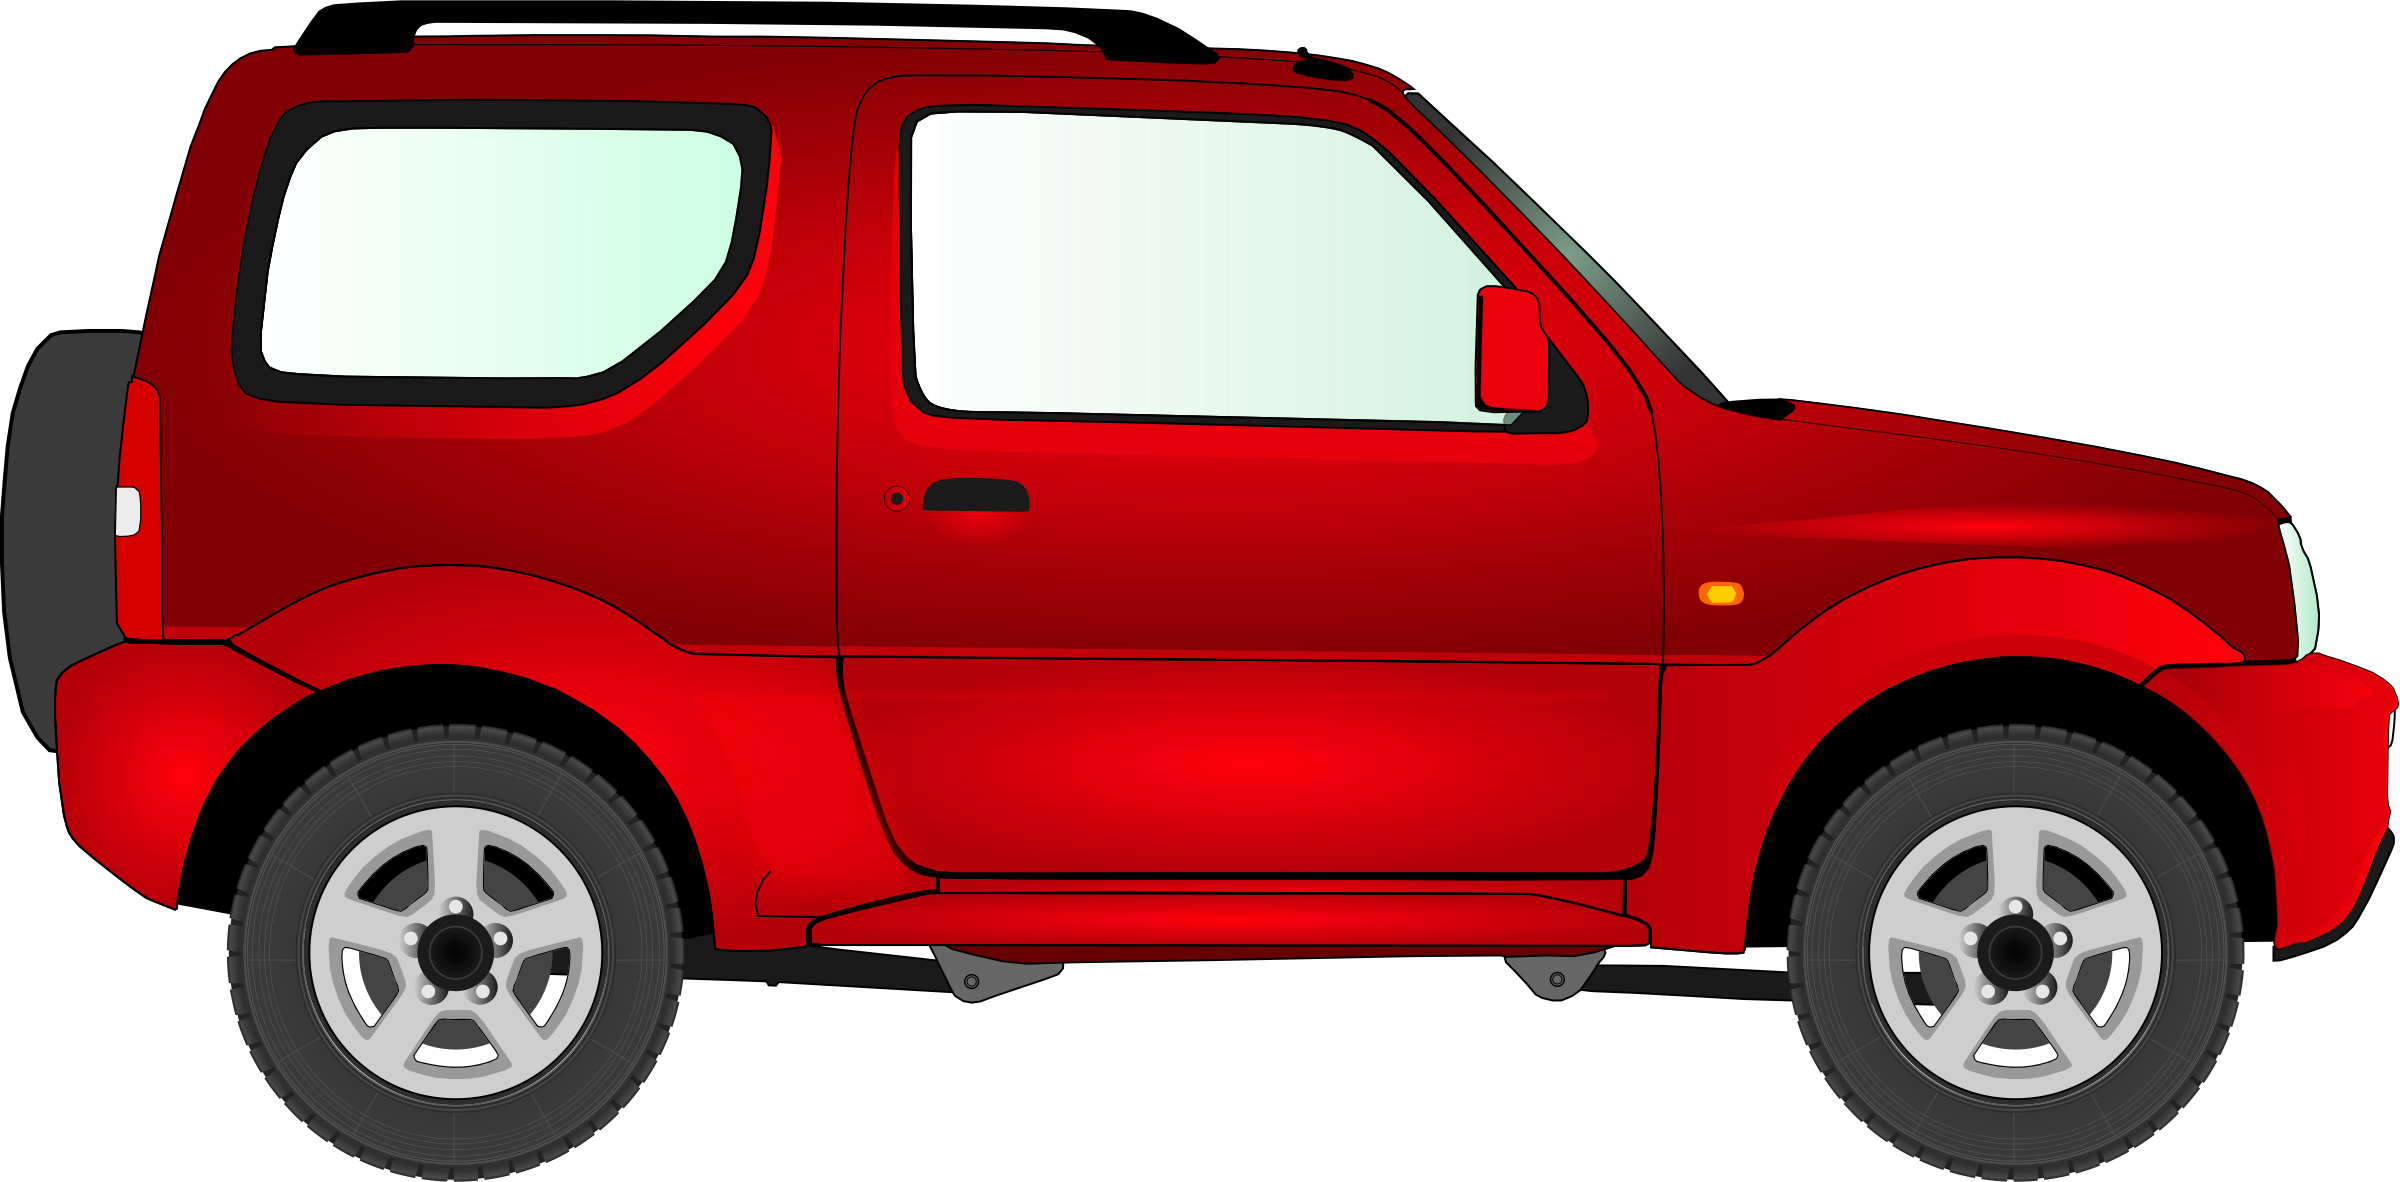 Car 15 (red) by Firkin